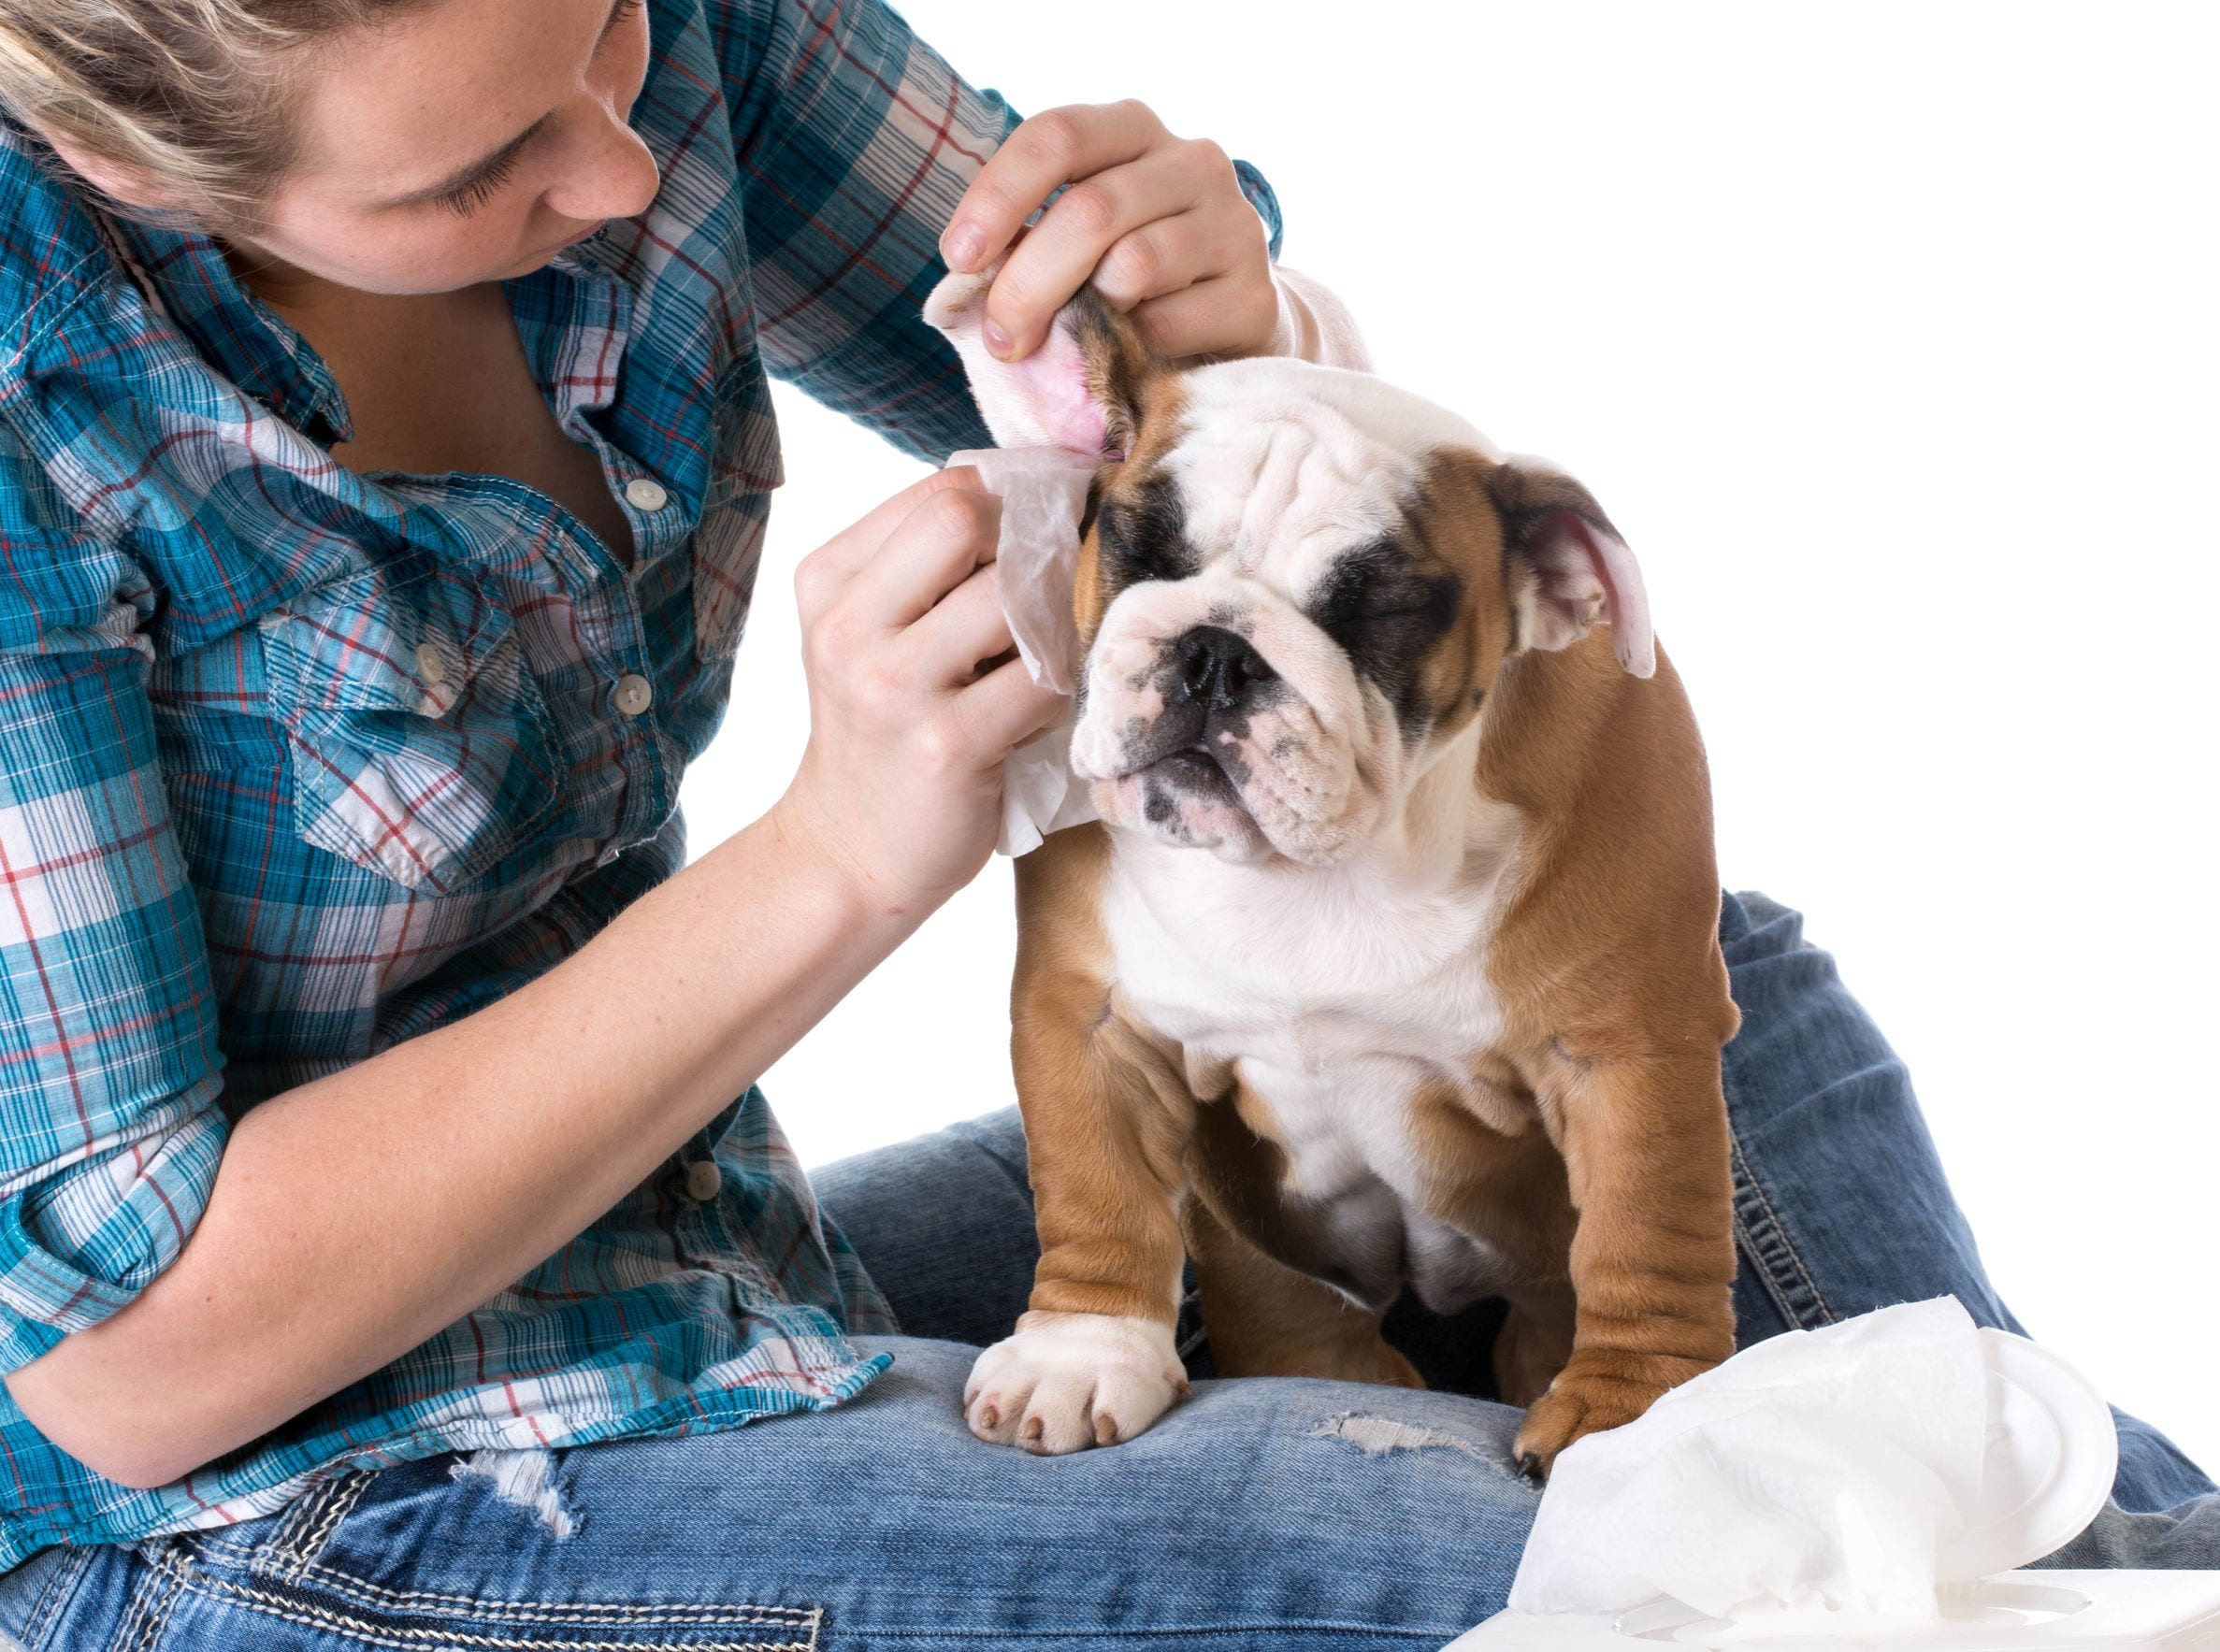 How To Make Your Own Dog Ear Cleaner Using Simple Ingredients